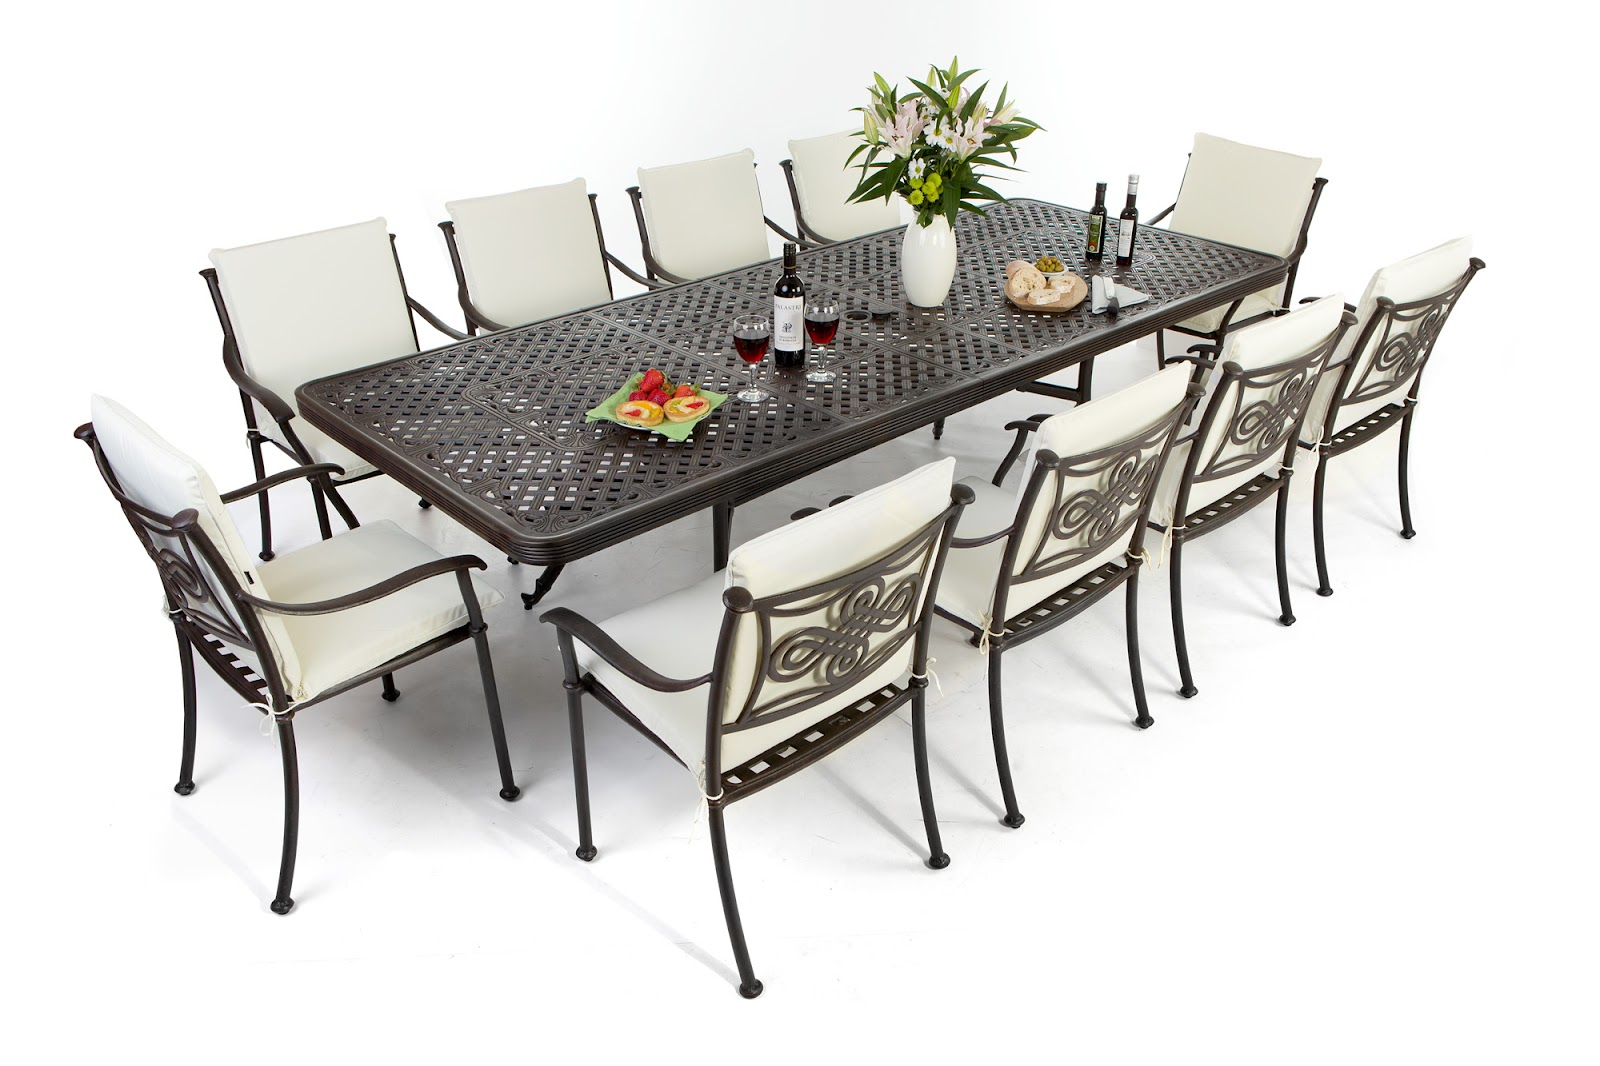 Garden Furniture 6 Chairs 8 seat patio table savannah 8 seater rattan outdoor patio garden